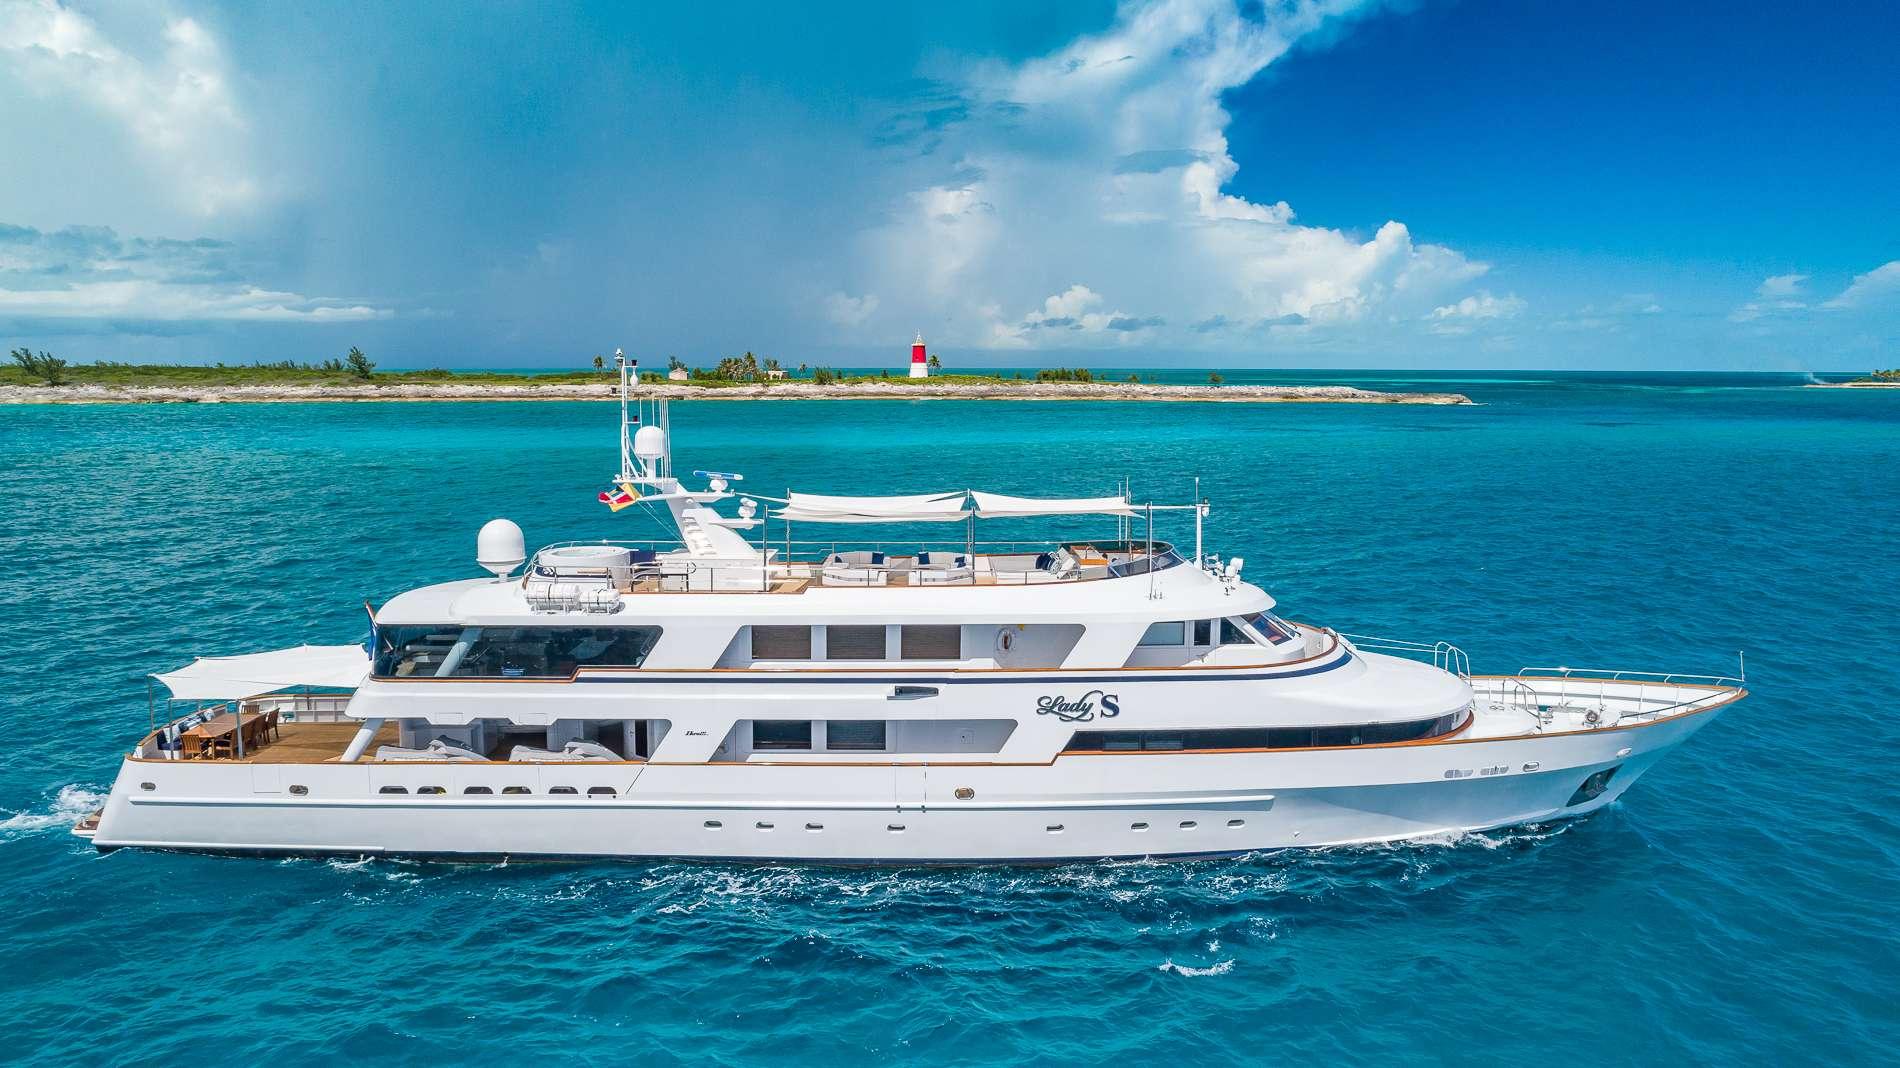 Power Yacht 'Power', 10 PAX, 8 Crew, 151.00 Ft, 46.00 Meters, Built 1989, Benetti, Refit Year 2018